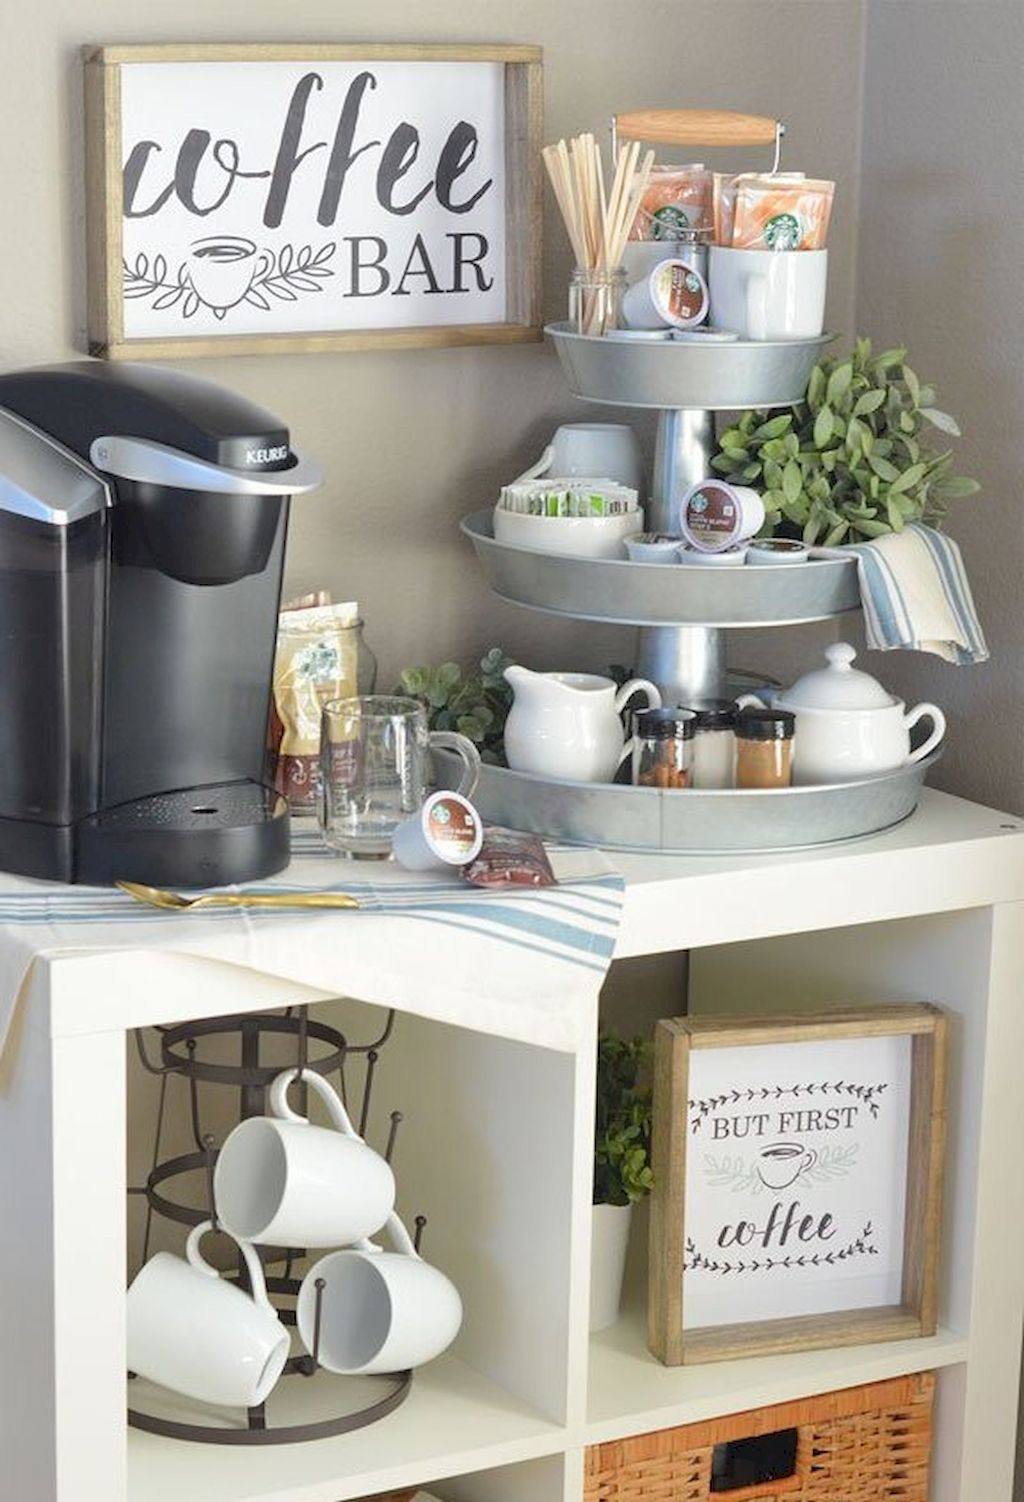 Personalized home coffee bar ideas apartment living student apartment decor budget apartment decorating